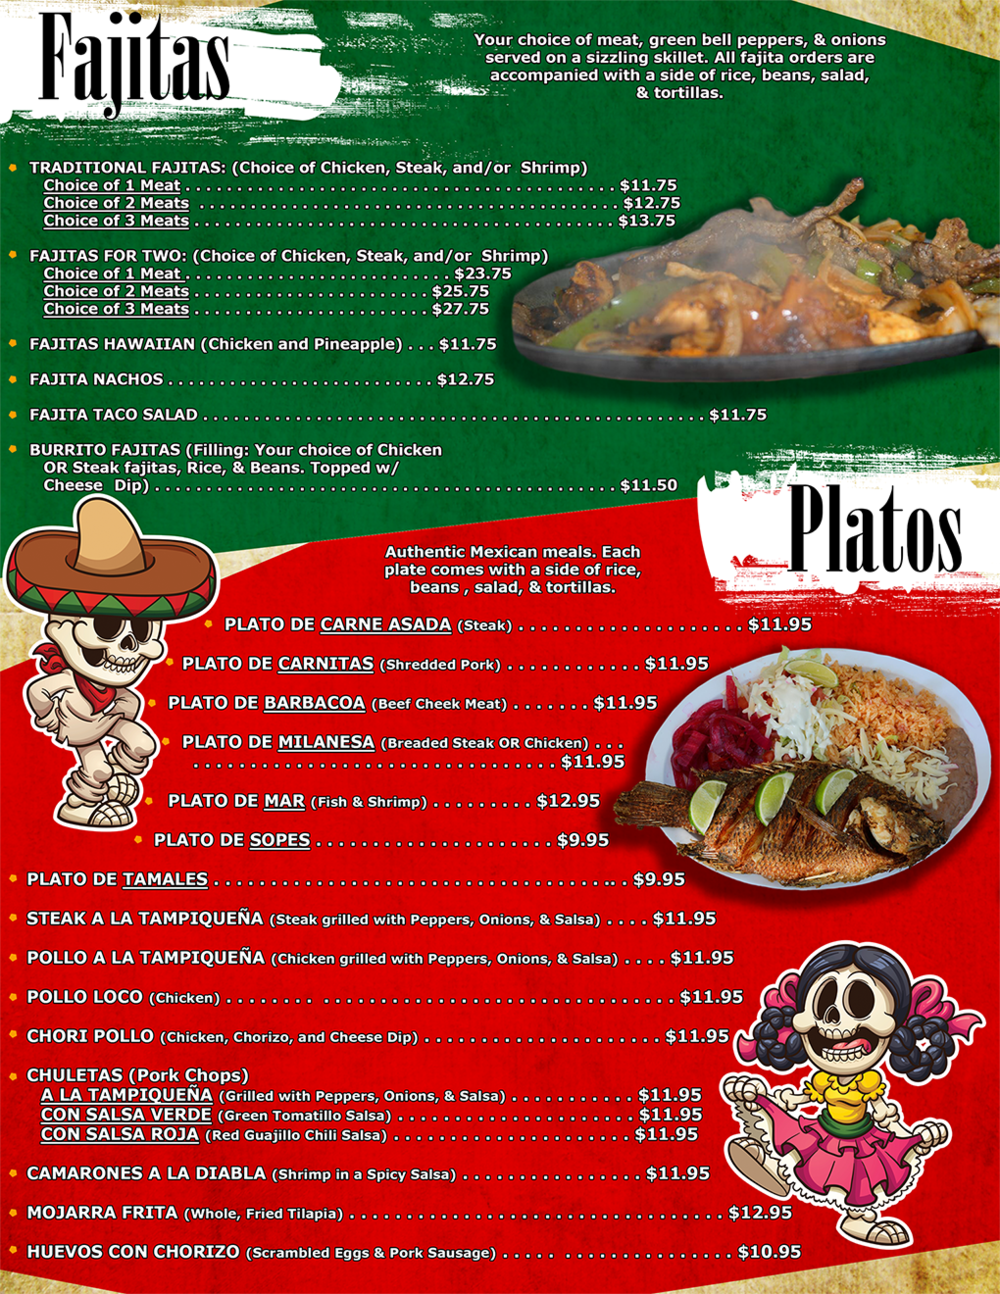 Fajitas and Platos